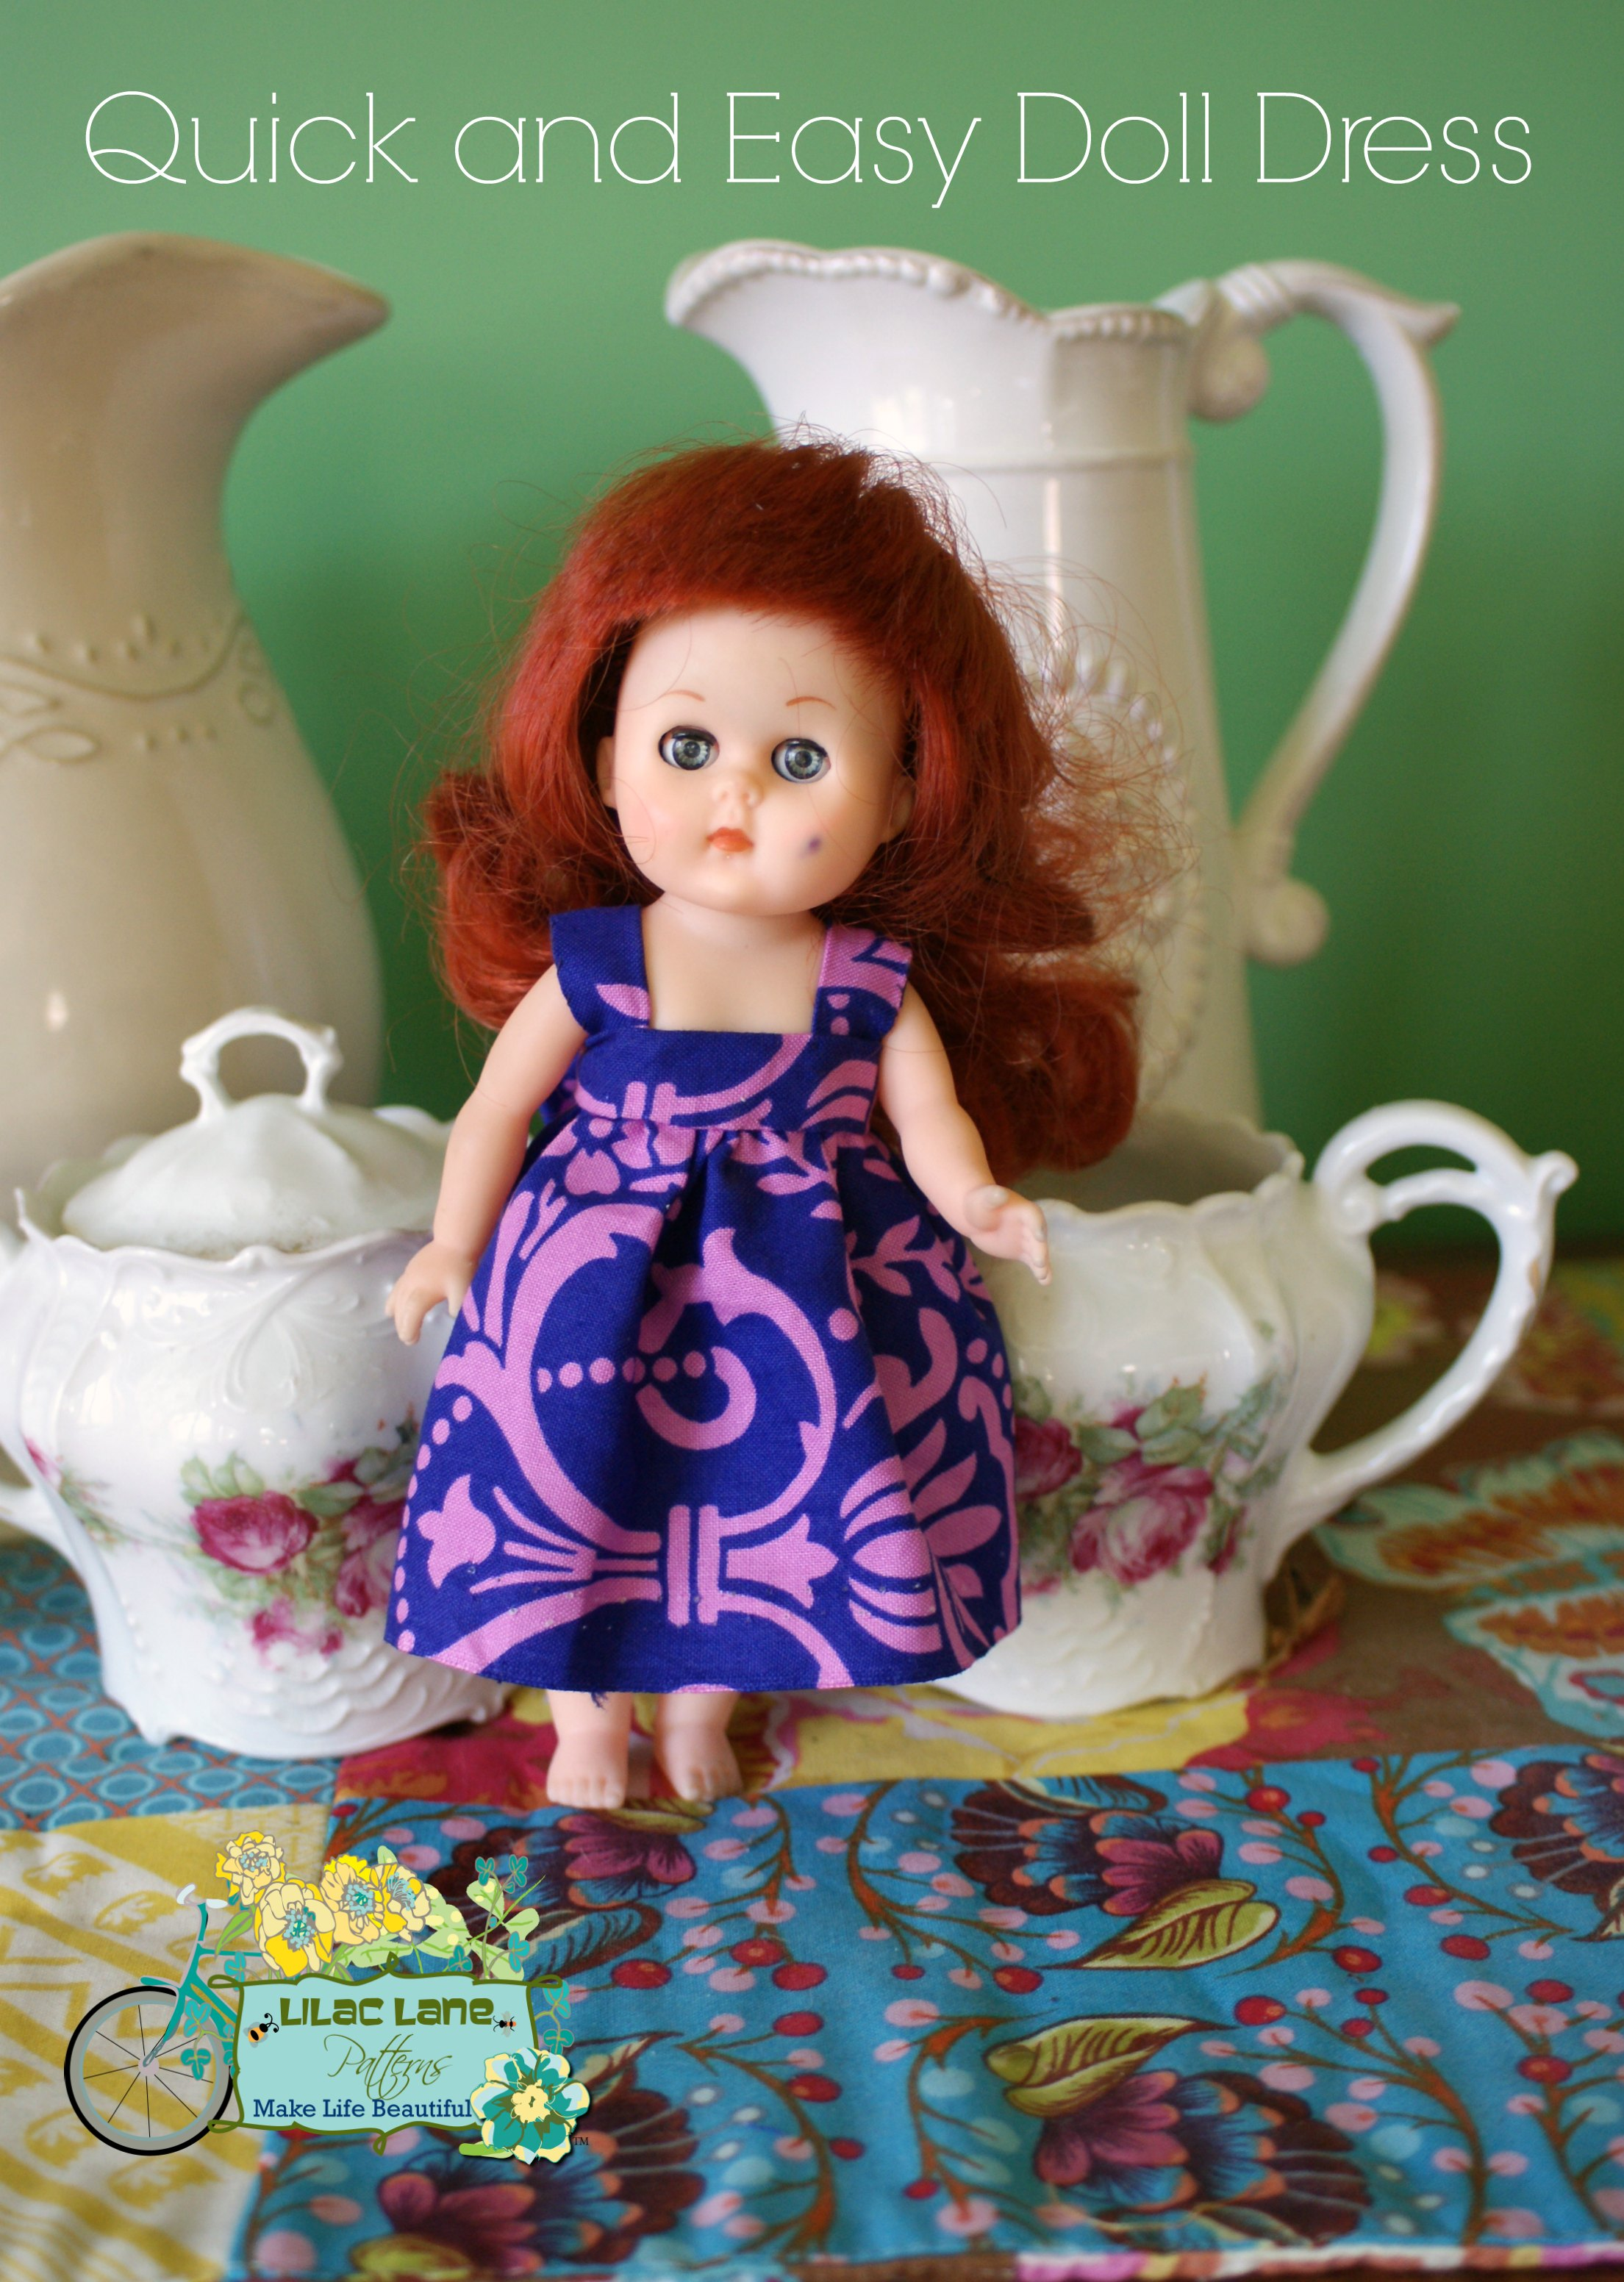 Melissa Stramel Lilac Lane Patterns Quick and Easy Doll Dress Tutorial